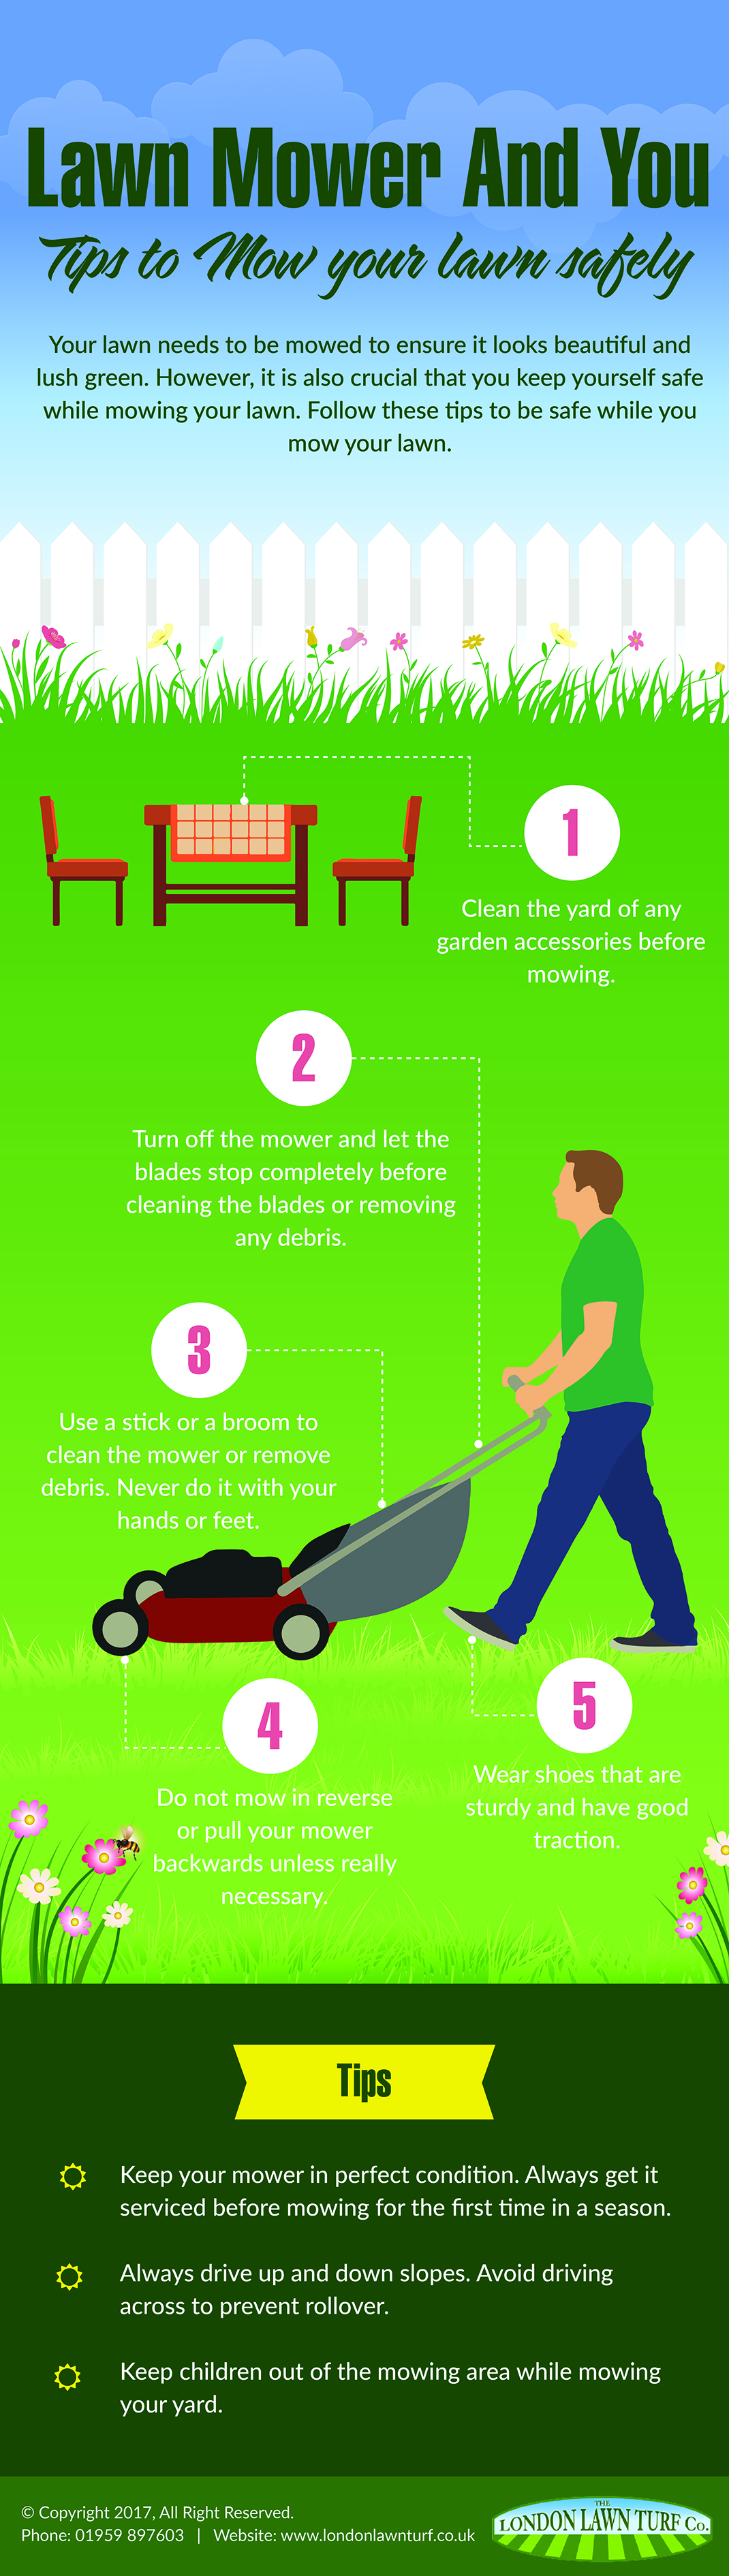 Lawn Mower and you